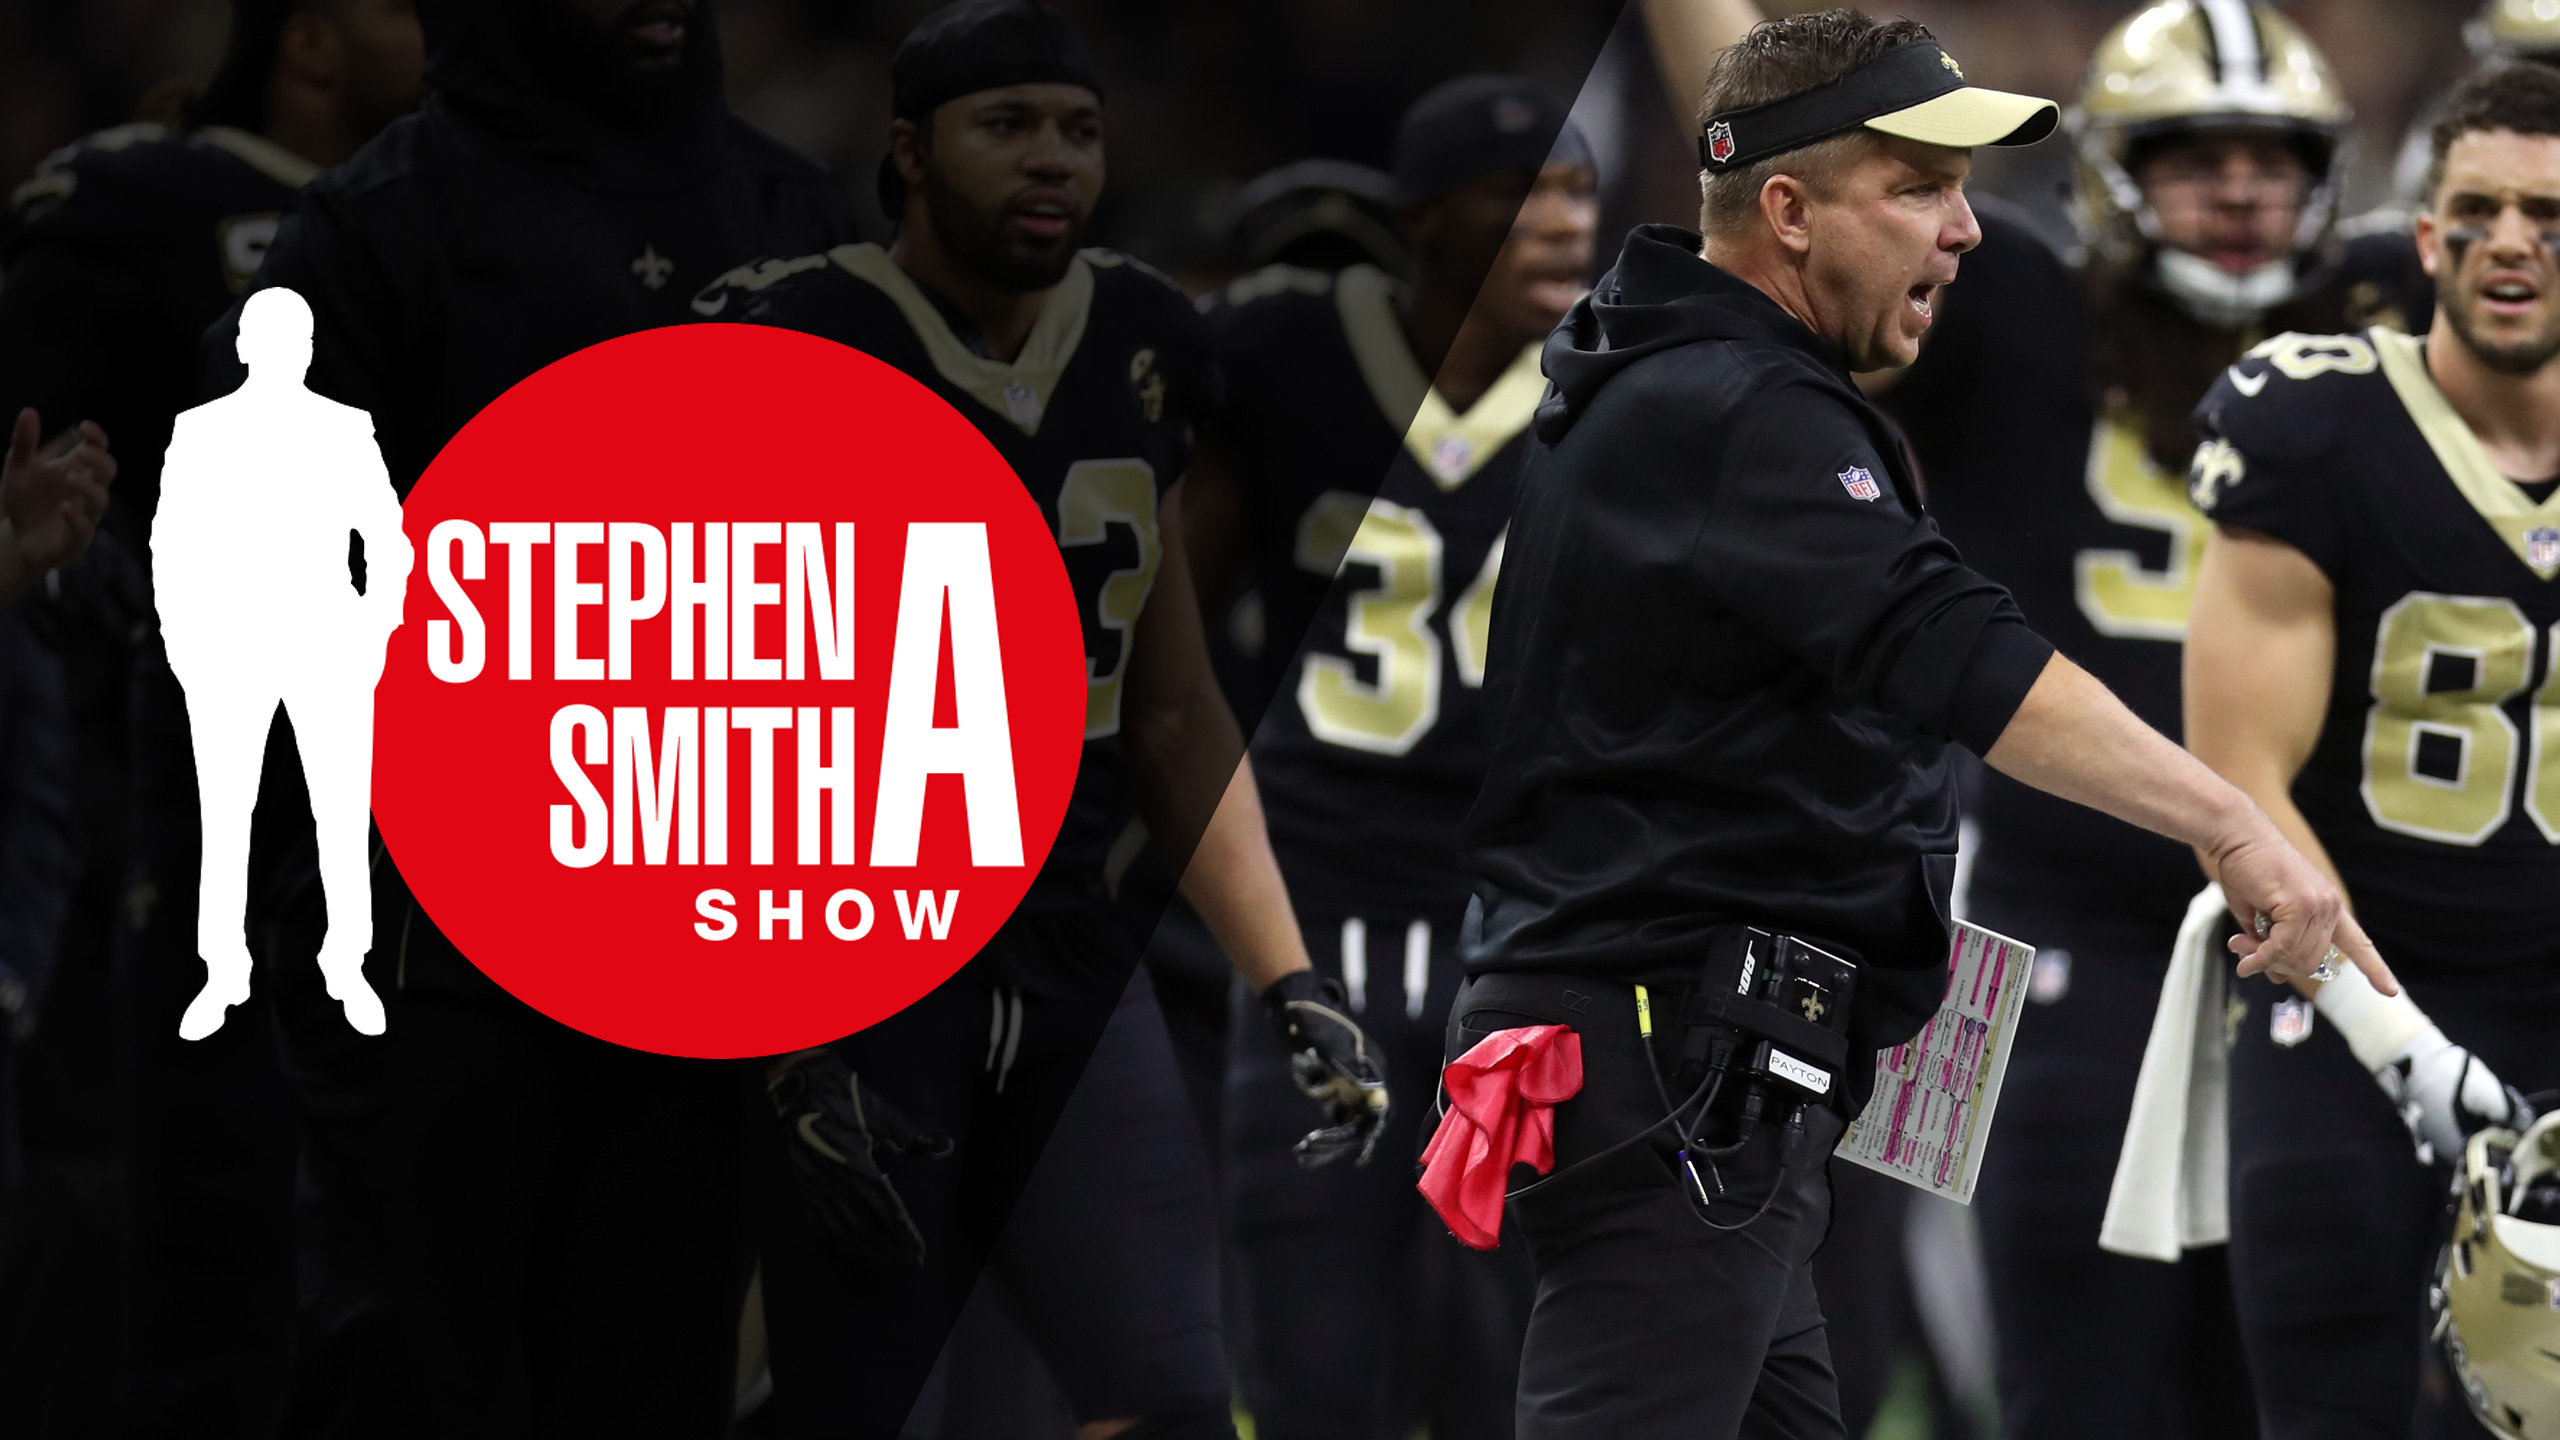 Mon, 1/21 - The Stephen A. Smith Show